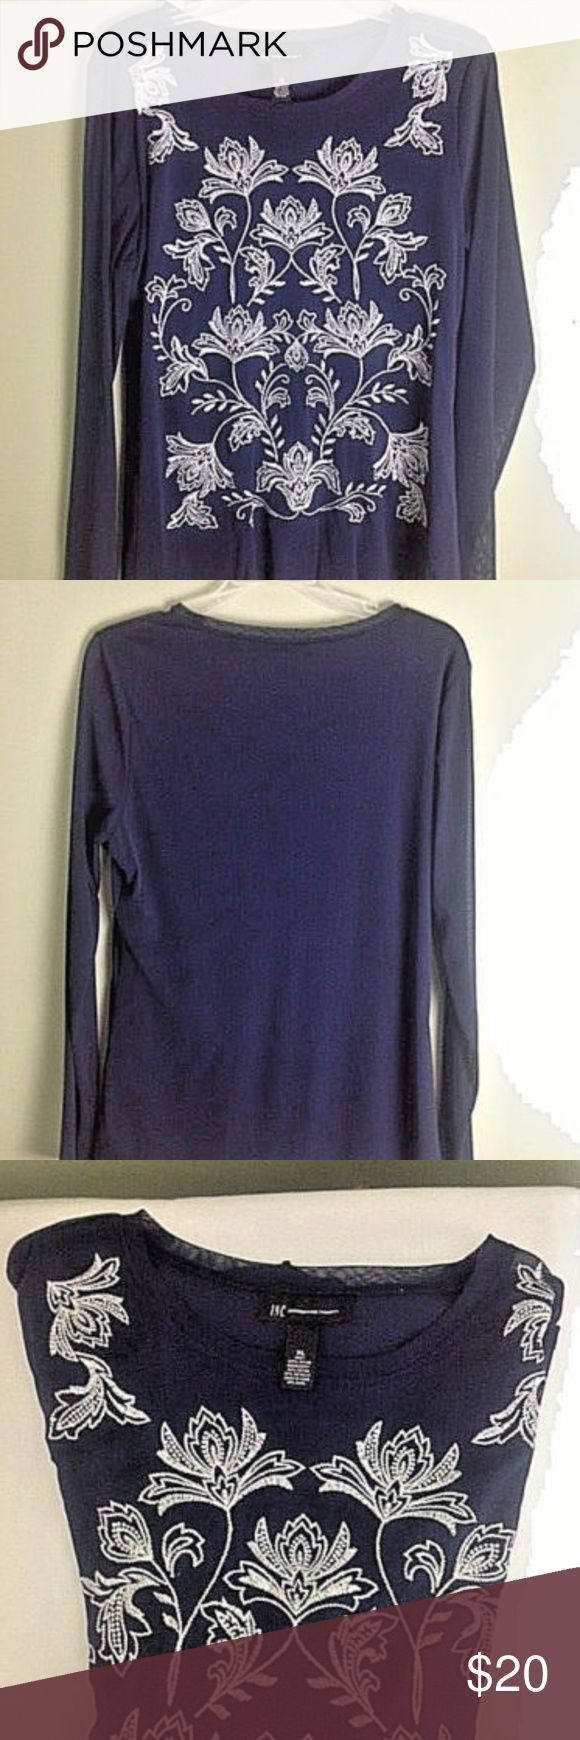 I-N-C international concepts women's Top XL I-N-C international concepts women's Top. Design flowers in the front. 100% Nylon embroidery 90% Rayon and 10% Metallic. Size XL, Color Navy Blue and silver. New without tag.  Price $19.99  Free Shipping  Free Return INC International Concepts Tops